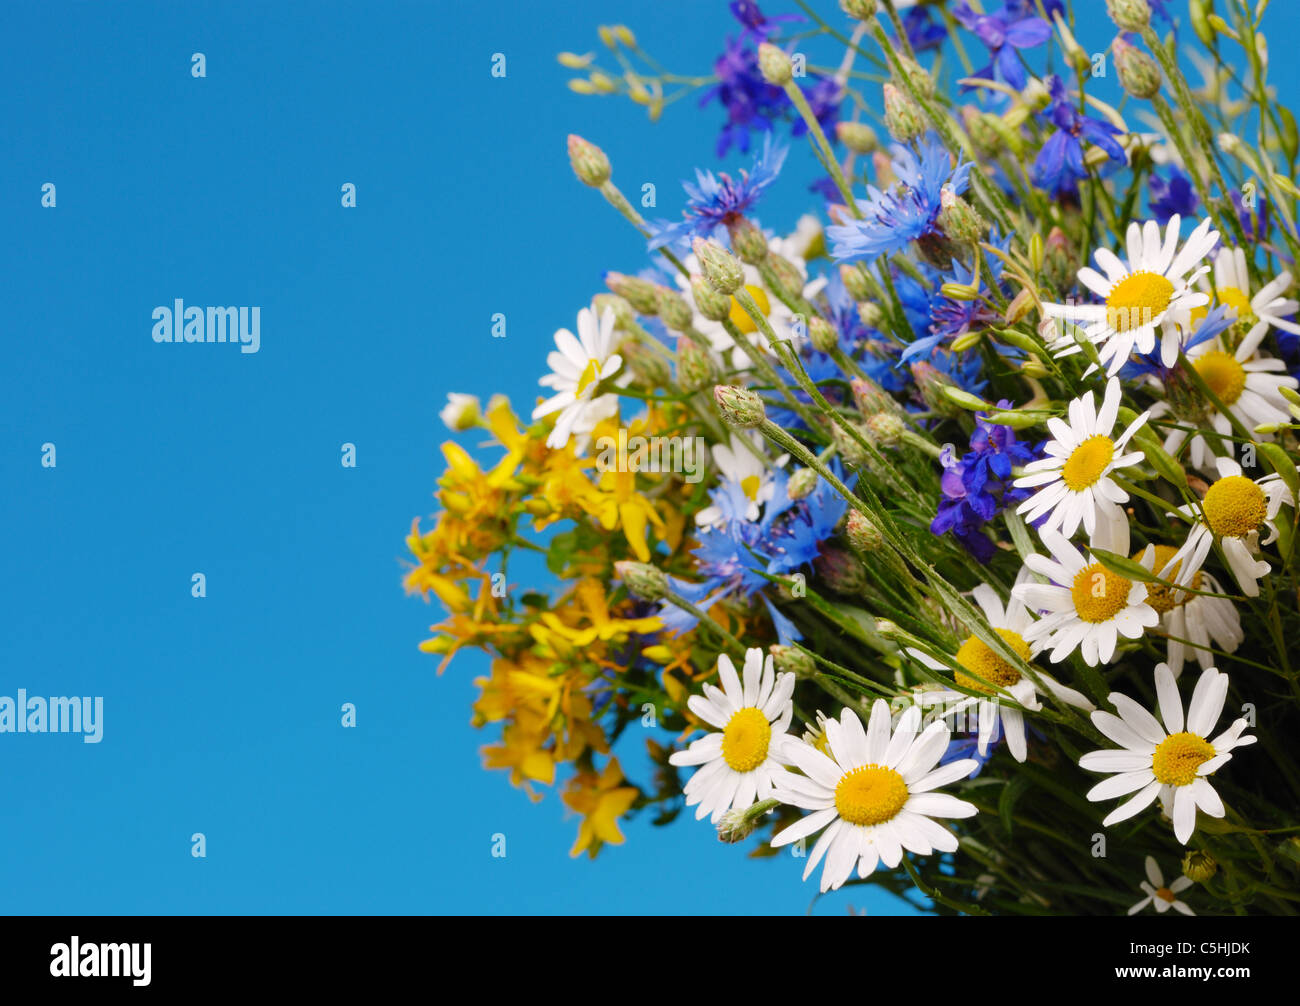 Fresh Field Flowers Bouquet On The Blue Background Stock Photo Alamy